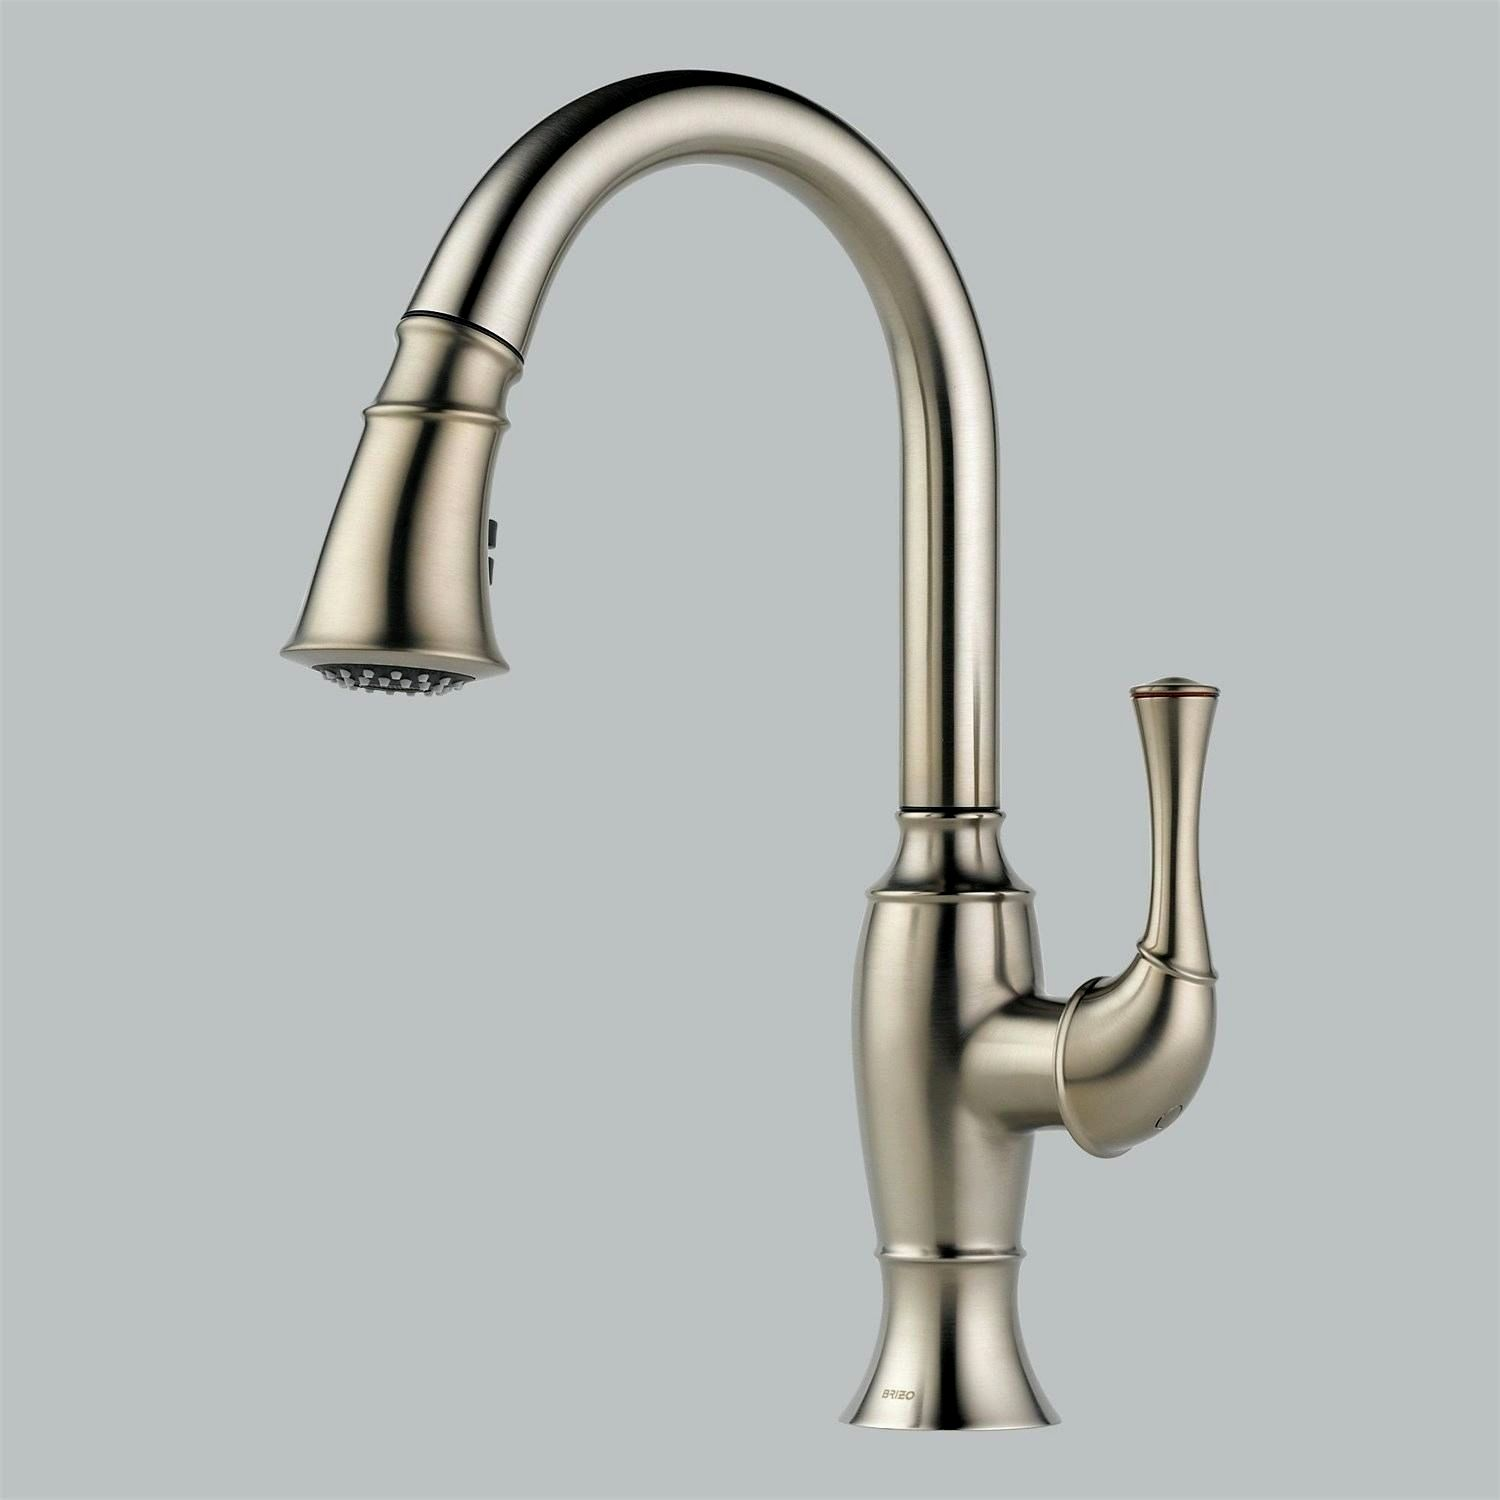 elegant touchless bathroom faucet wallpaper-Top touchless Bathroom Faucet Construction